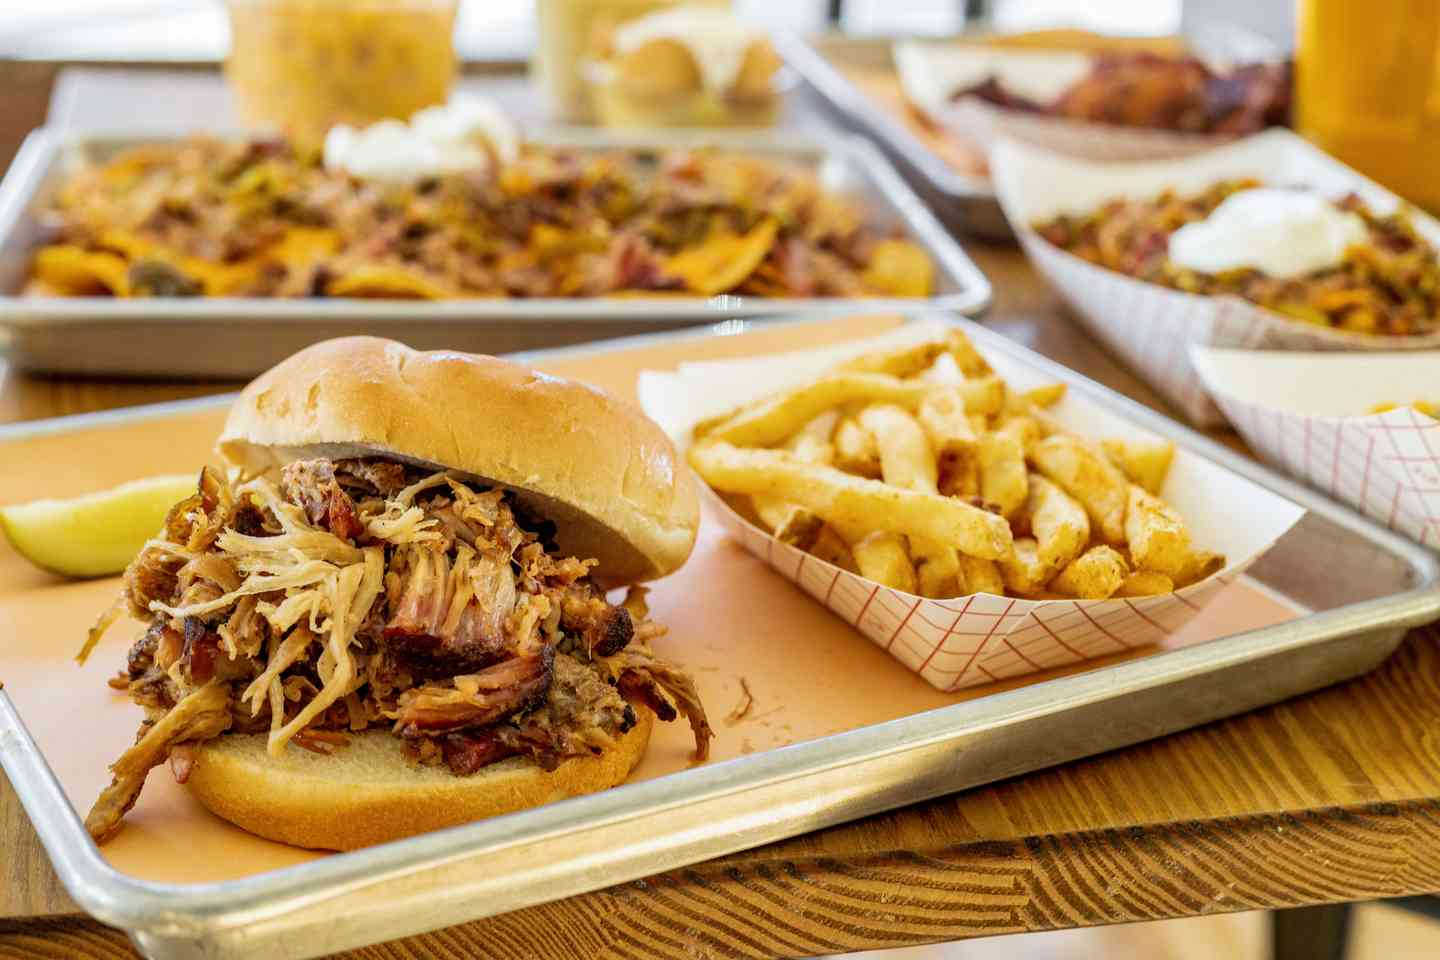 pulled pork and fries